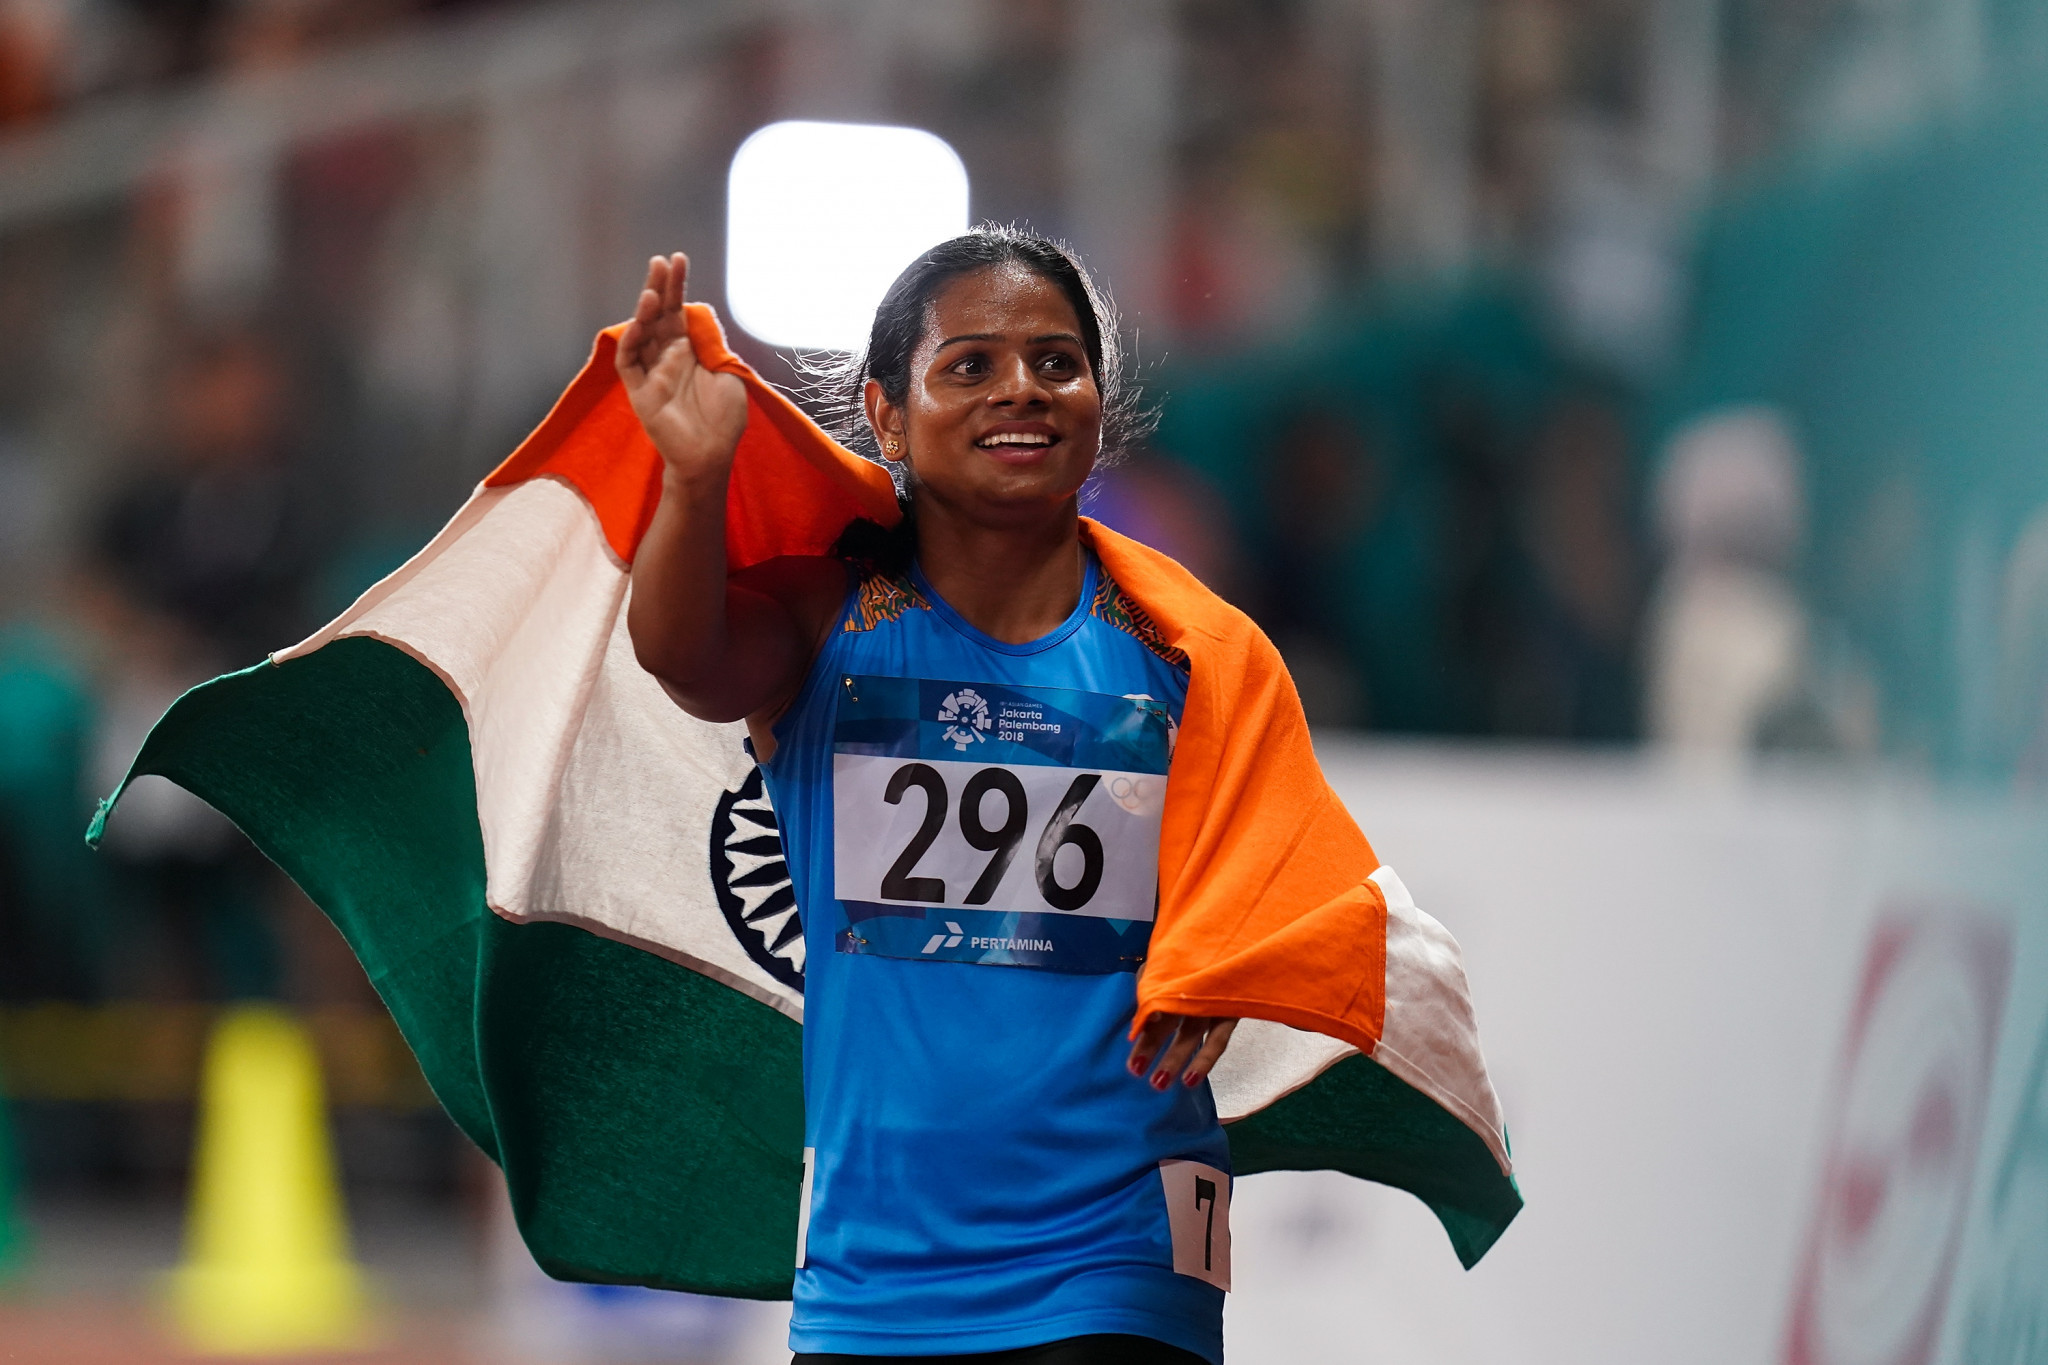 India to miss World Athletics Relays over travel restrictions following COVID-19 surge